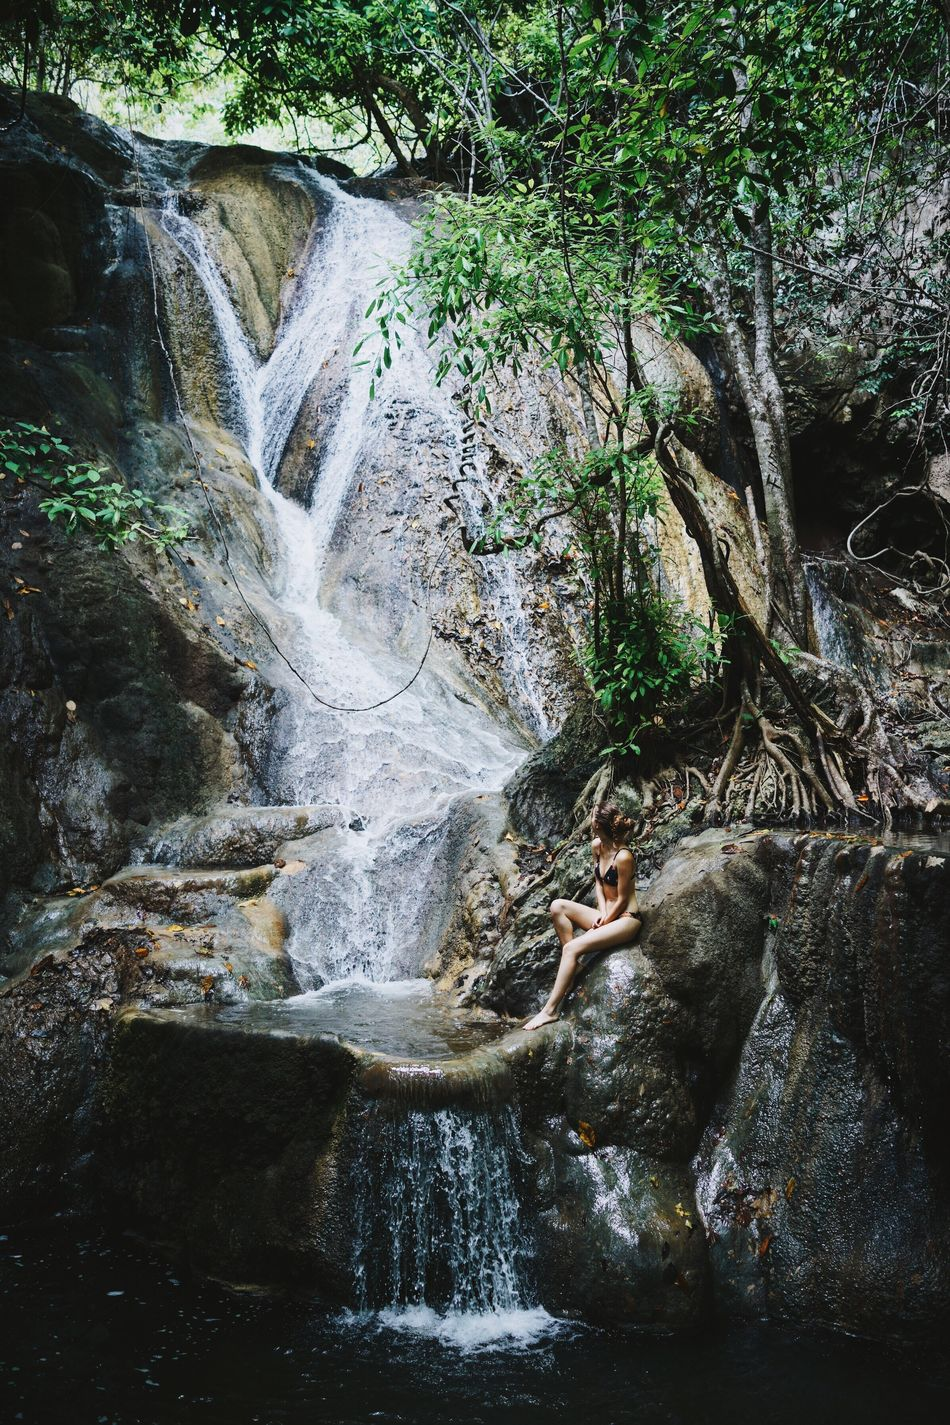 island adventures with my girl Waterfall Nature Water Beauty In Nature Scenics Rock - Object Flowing Water Travel Destinations Outdoors Adventure Jungle Tropical Forest Island Girl Summer Travel Green River Tranquil Scene Idyllic Flowing ASIA INDONESIA Sumbawa